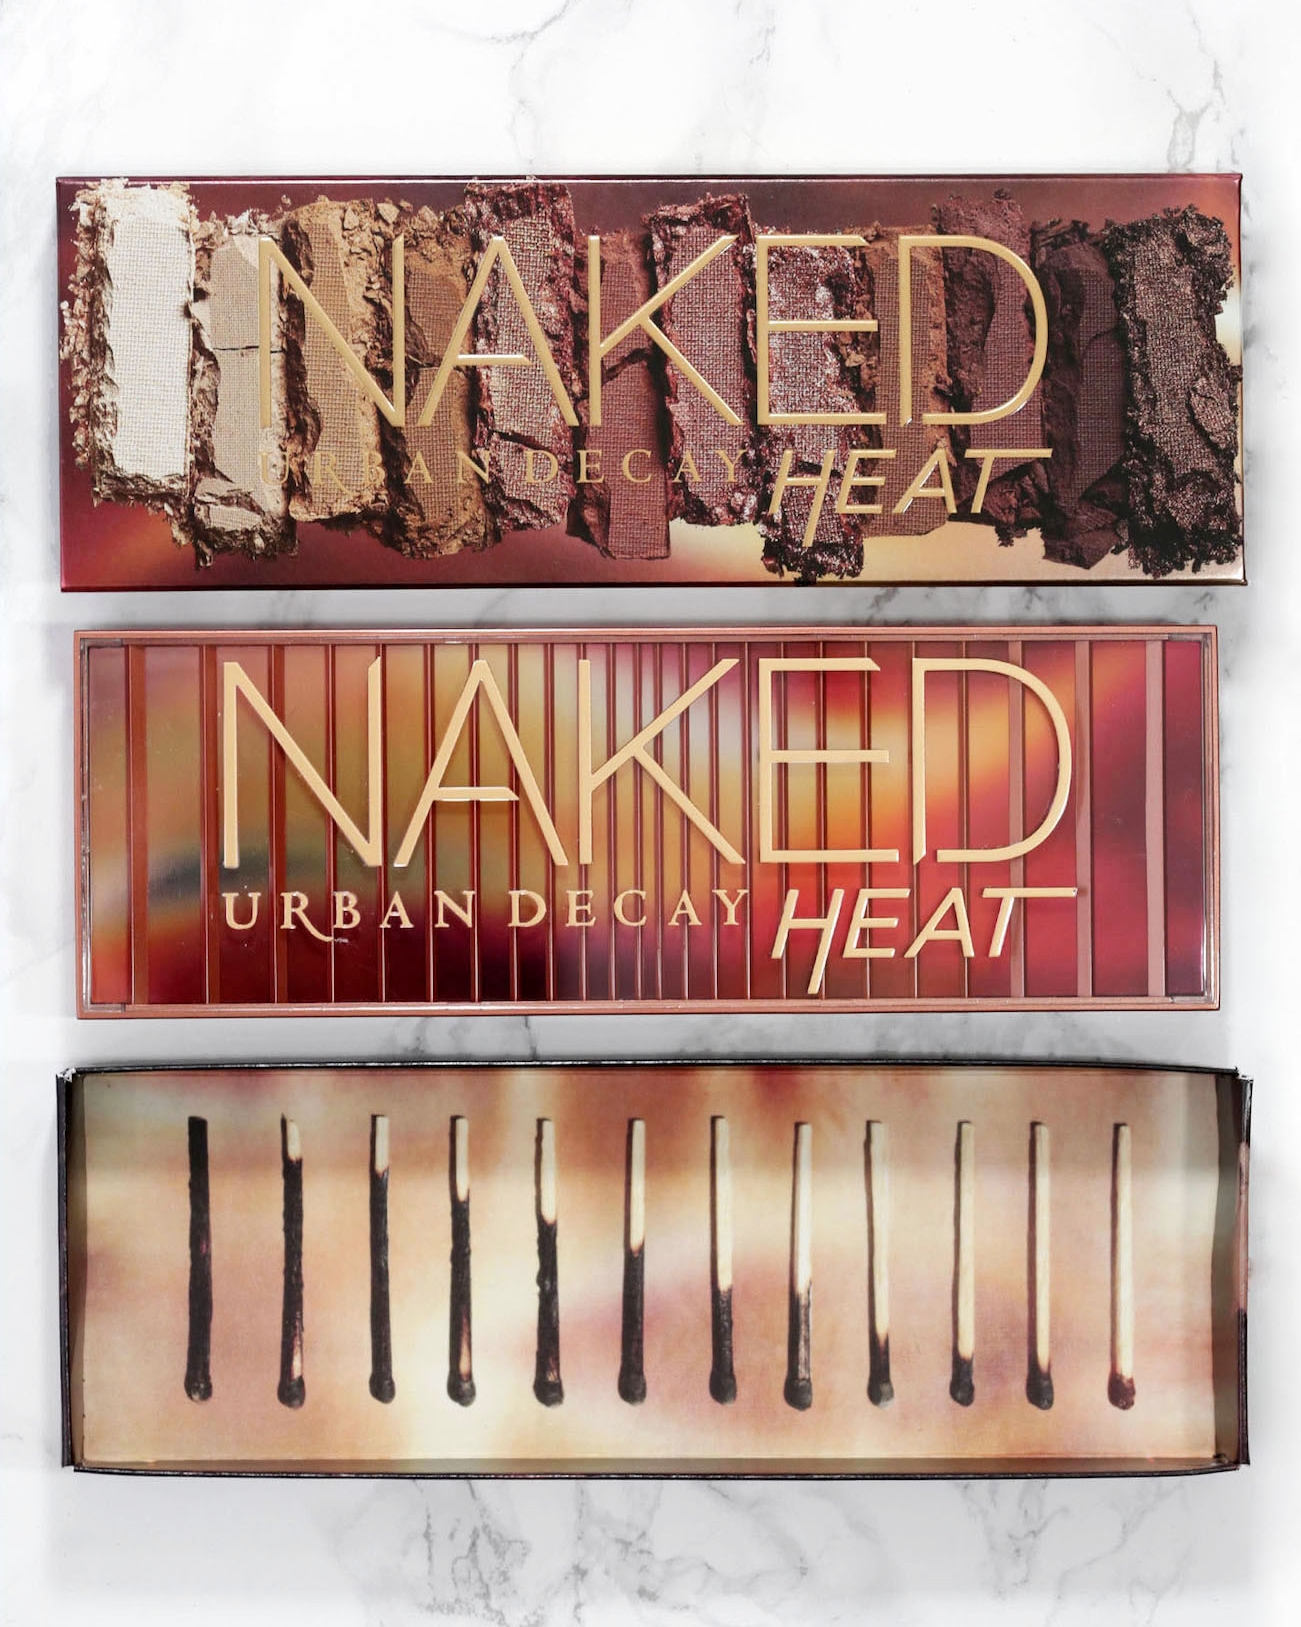 Urban Decay Heat Palette - swatches and honest review_9949.jpg